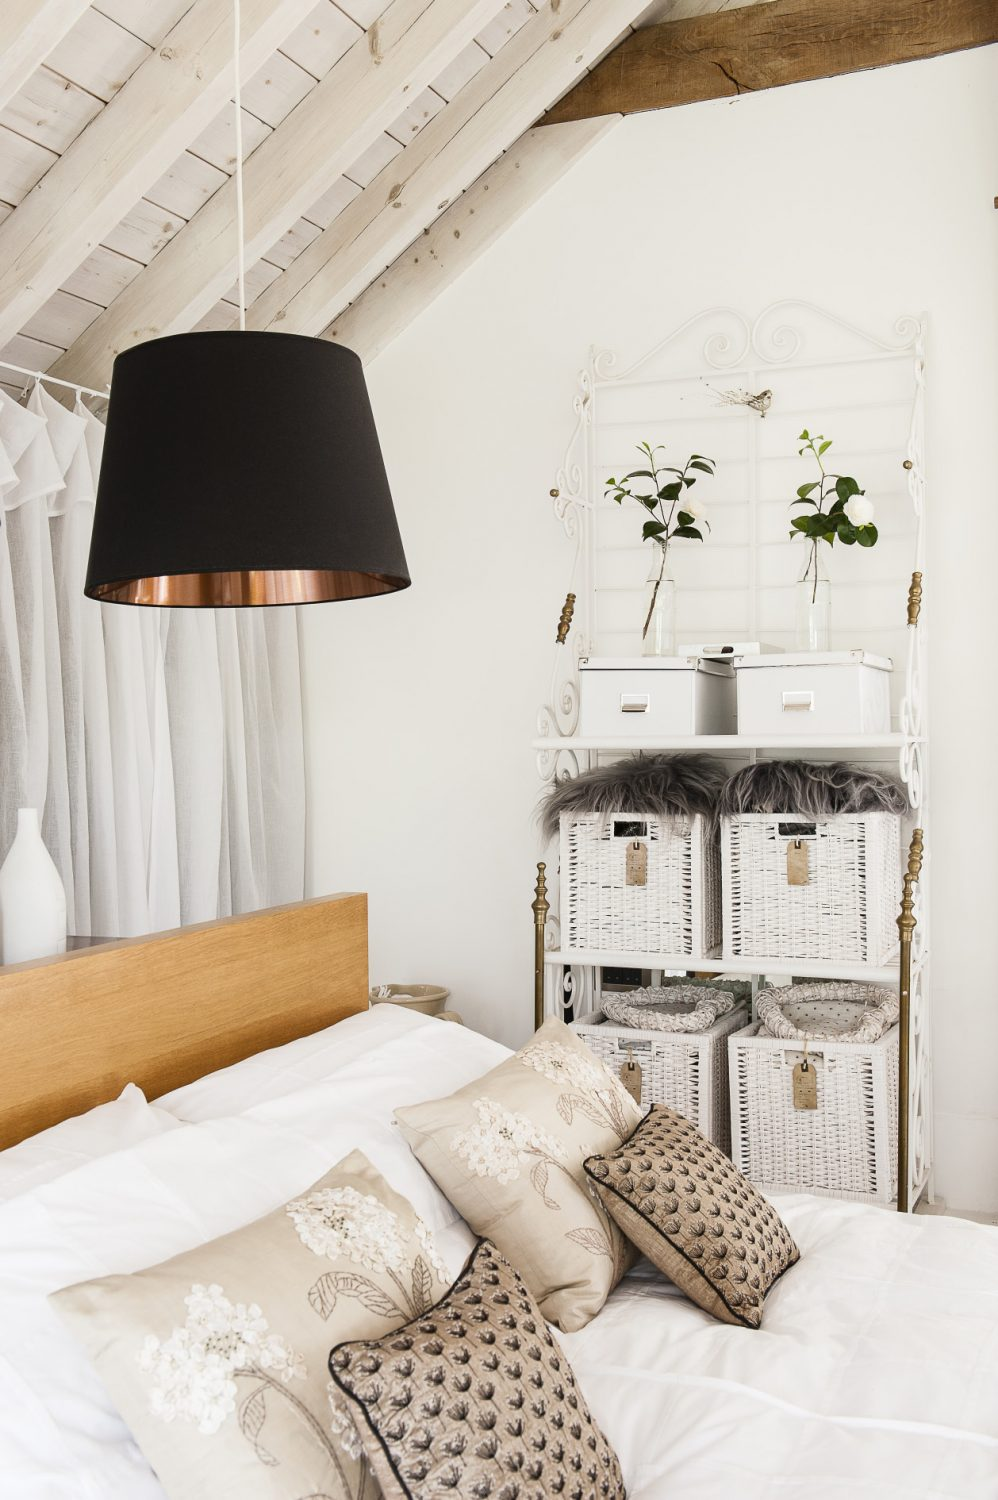 Throughout the house Sue has adhered to a crisp palette of whites accented with blacks, golds and pops of colour